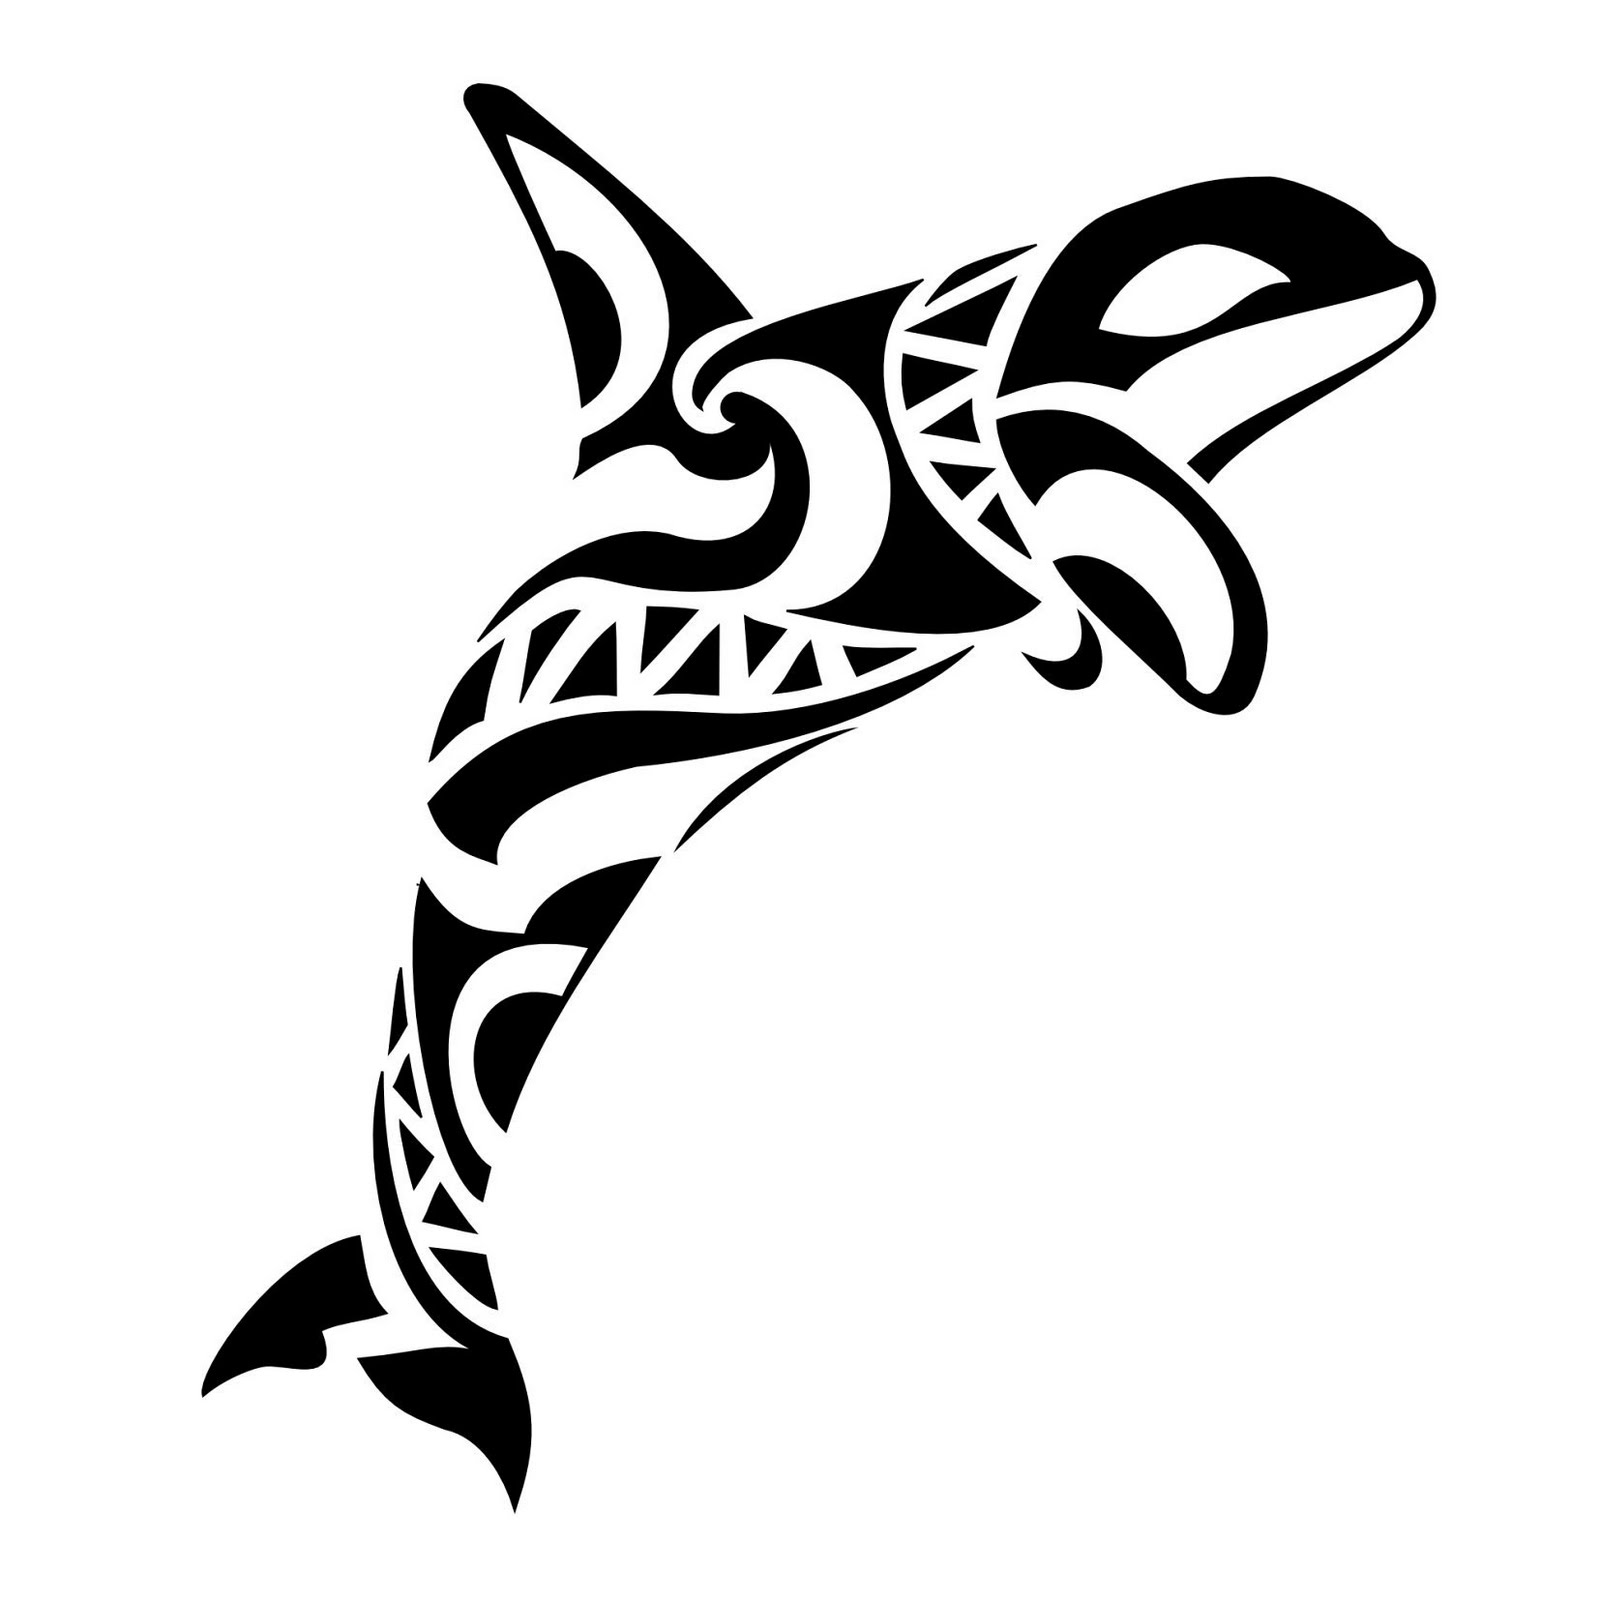 Sharkwhale clipart tribal #15